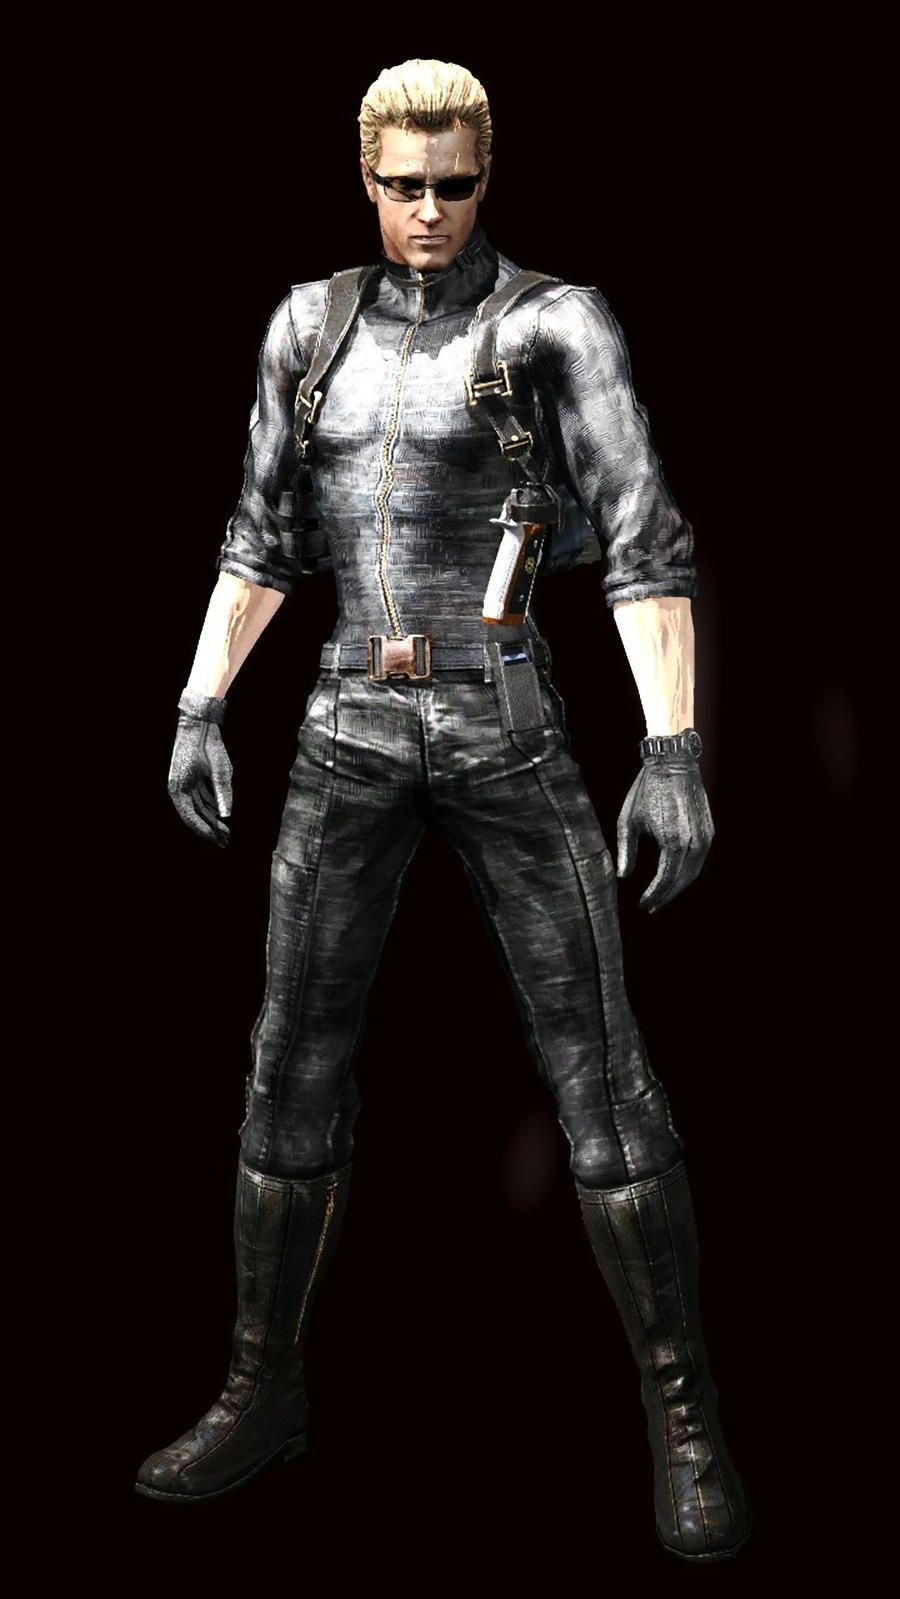 sc 1 st  The Zombie Apocalypse & Resident Evil Albert Wesker Costume-- Buy or DIY!